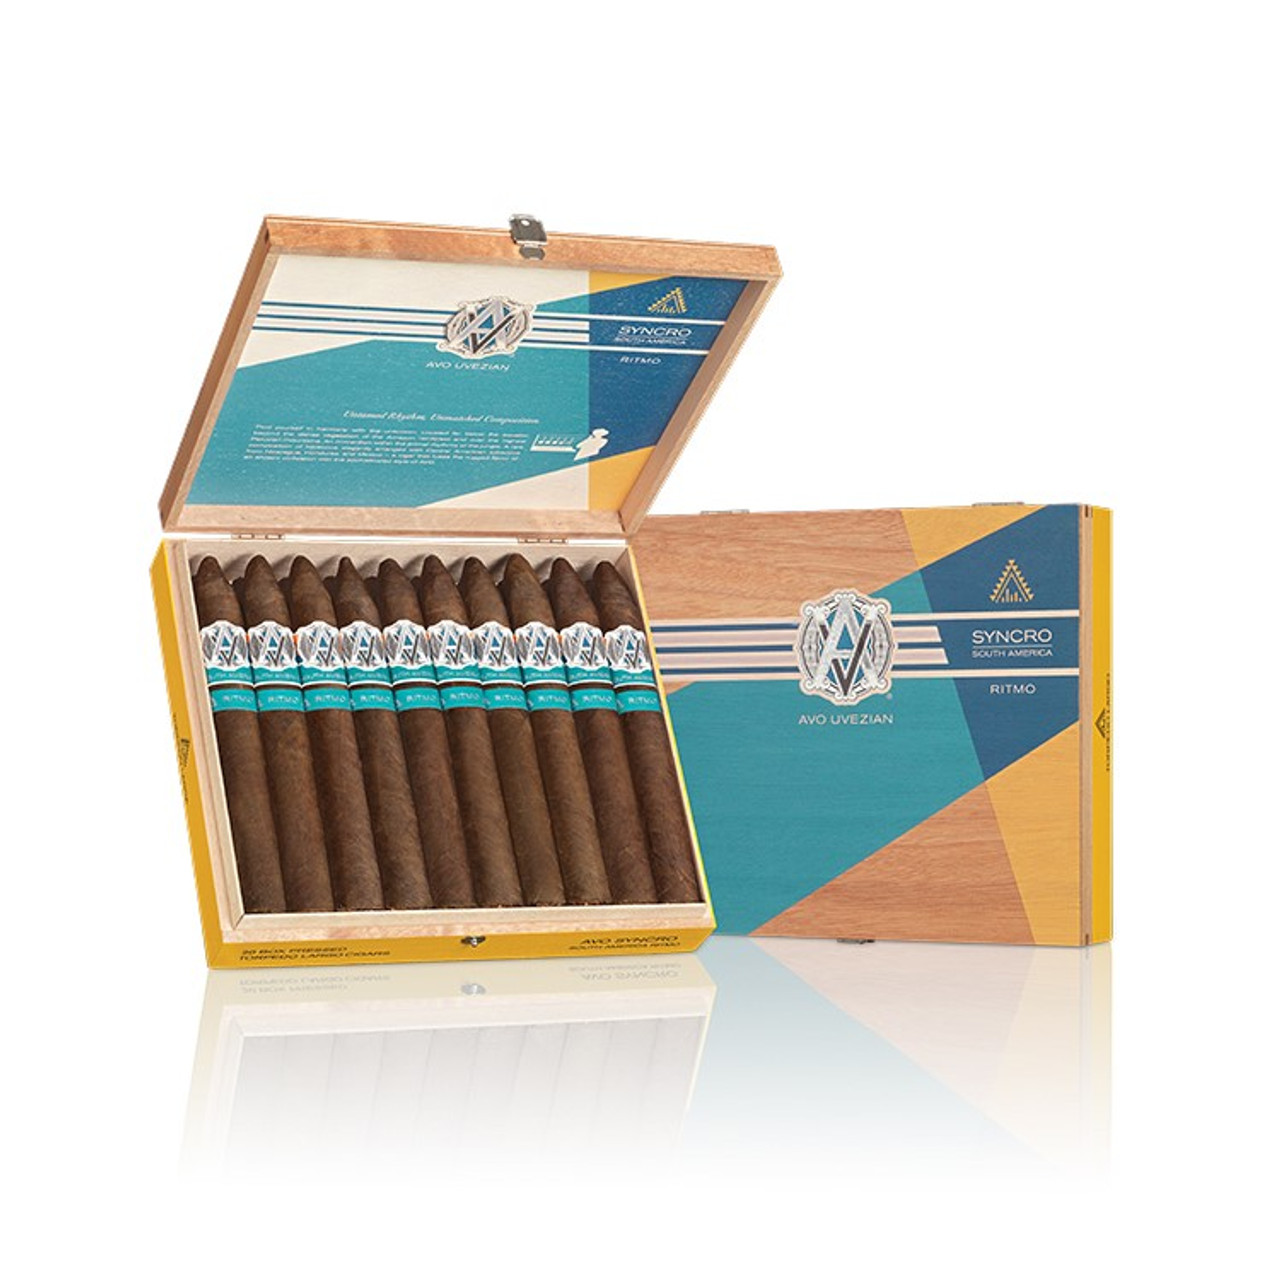 AVO Syncro Ritmo Robusto Cigars - 5 x 50 (Box of 20)